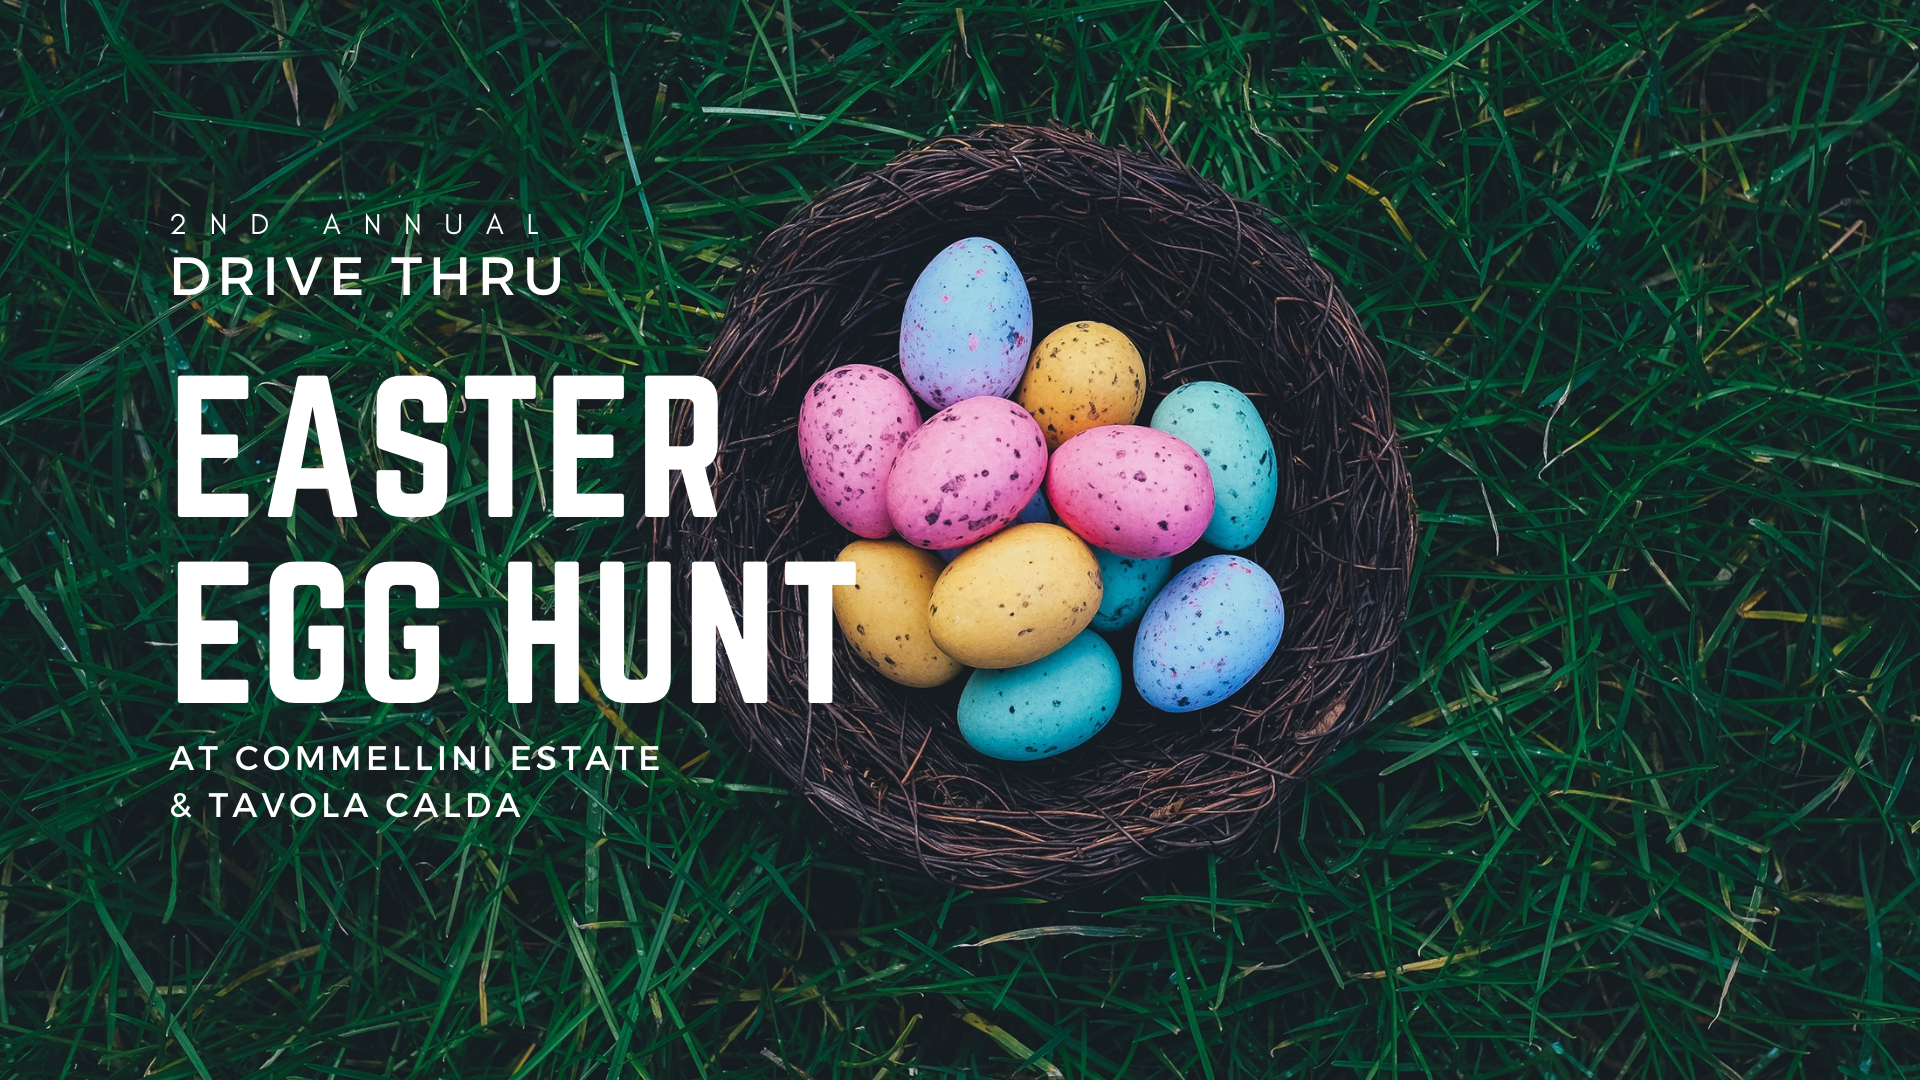 Drive Thru Easter Egg Hunt